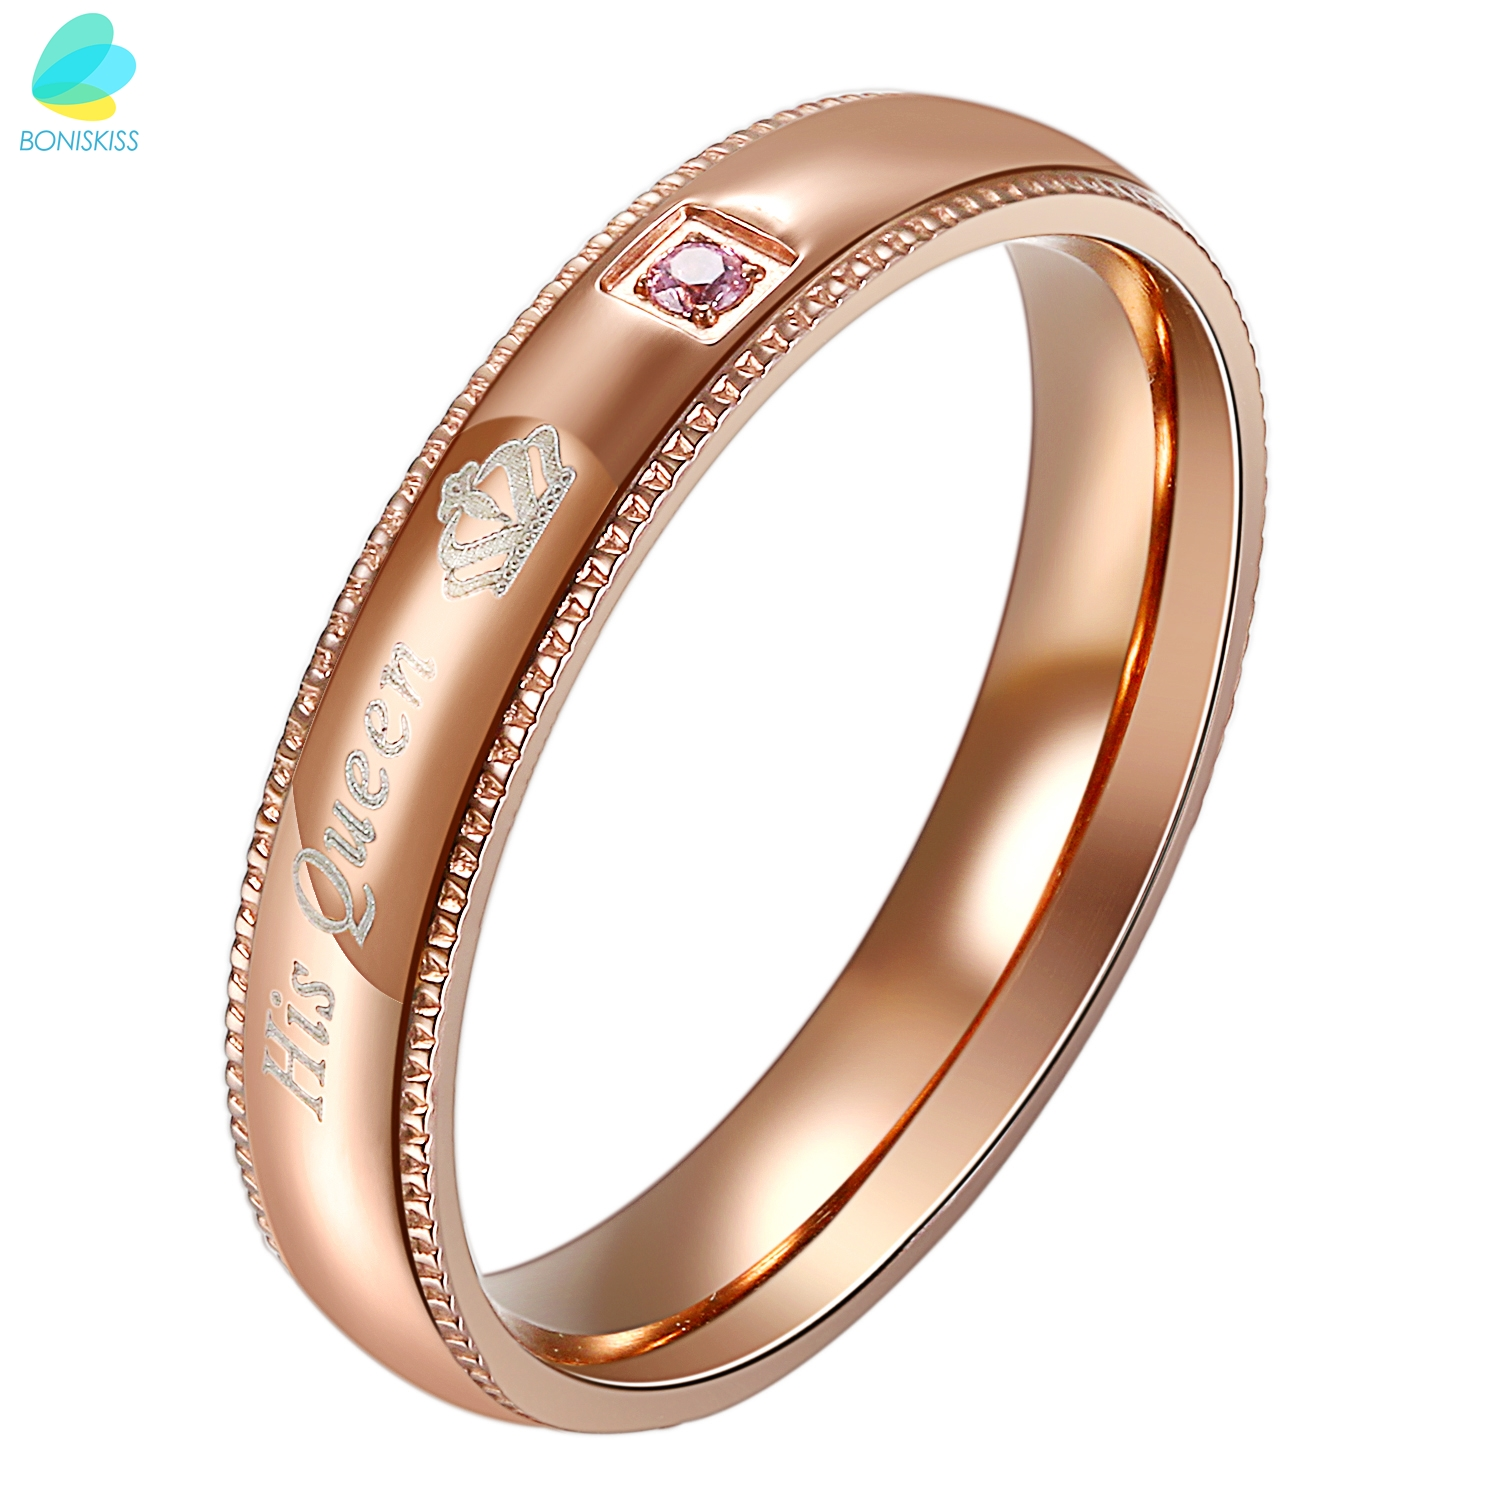 band sand wholesale wedding ring dazzling products black blast main jewelry stainless steel rings finish